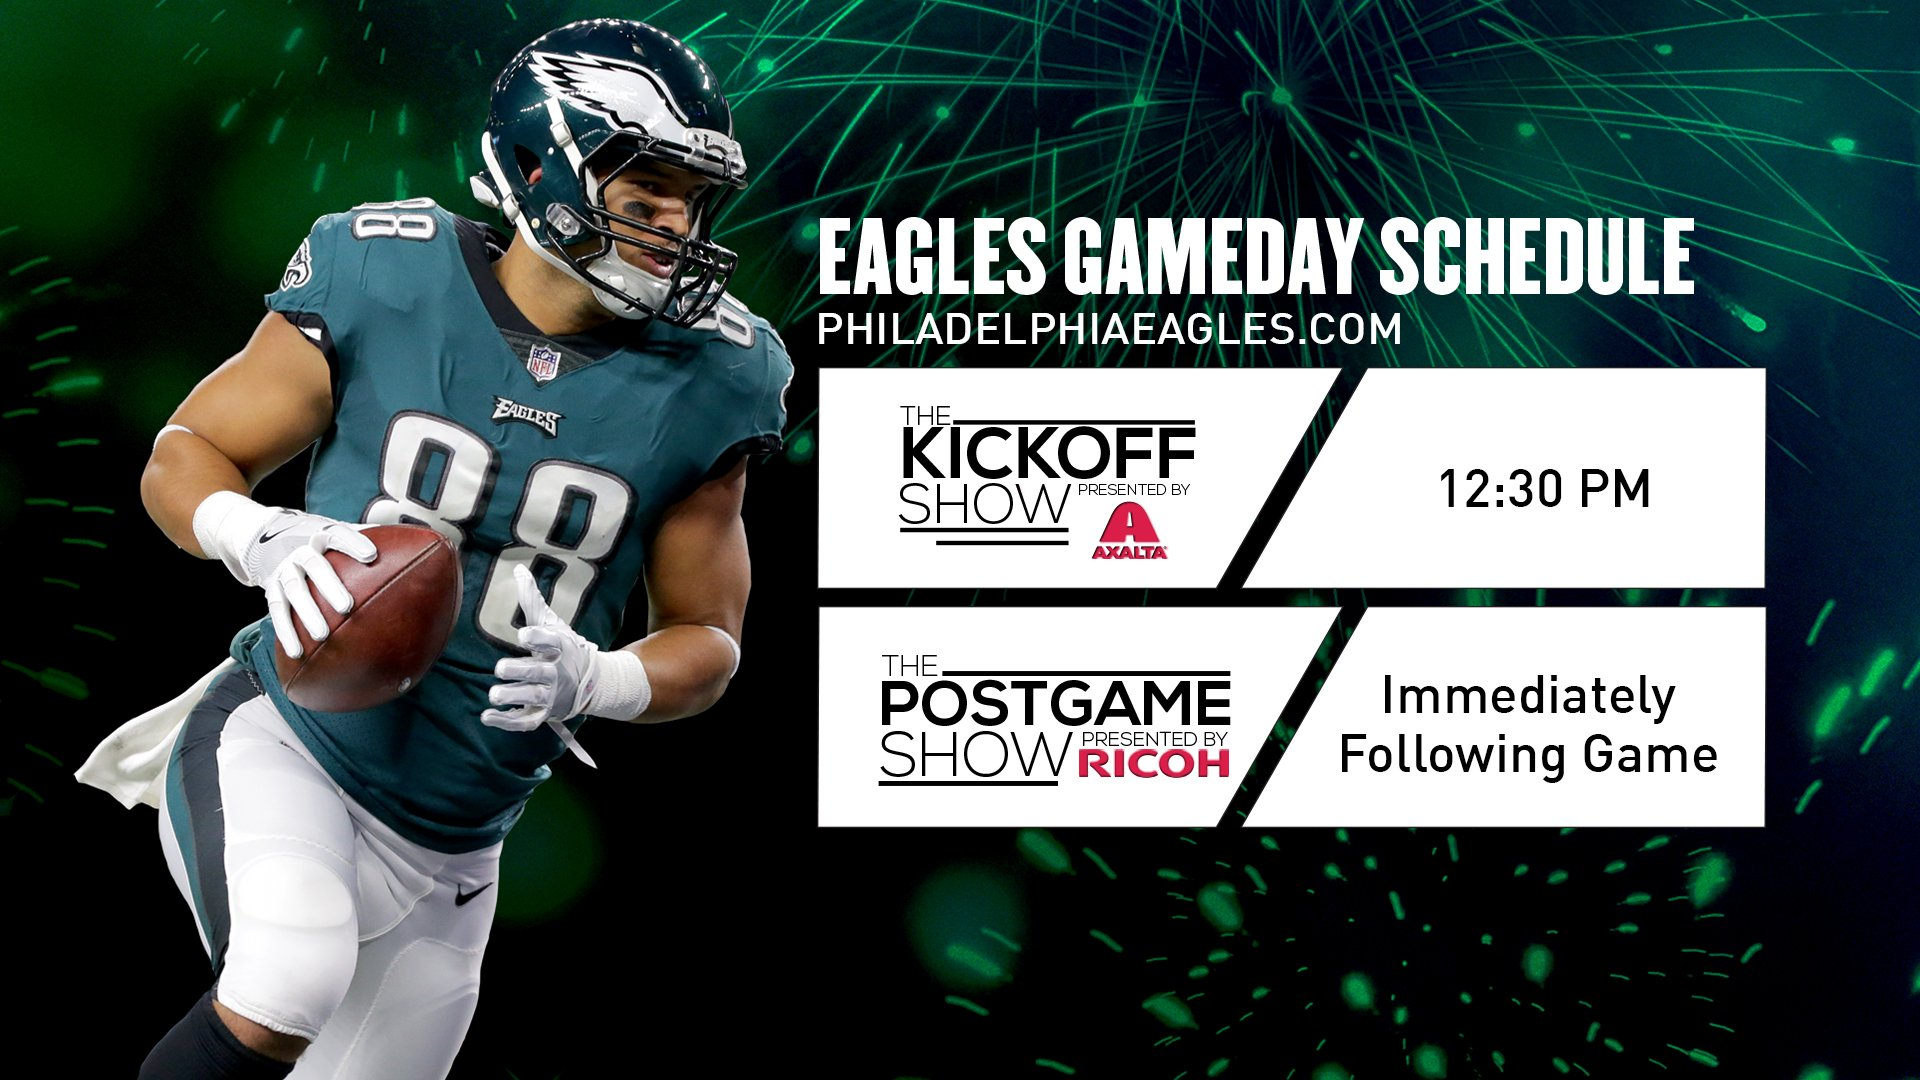 Today's #DALvsPHI Gameday schedule.  #FlyEaglesFly https://t.co/jk2qyS6vXs